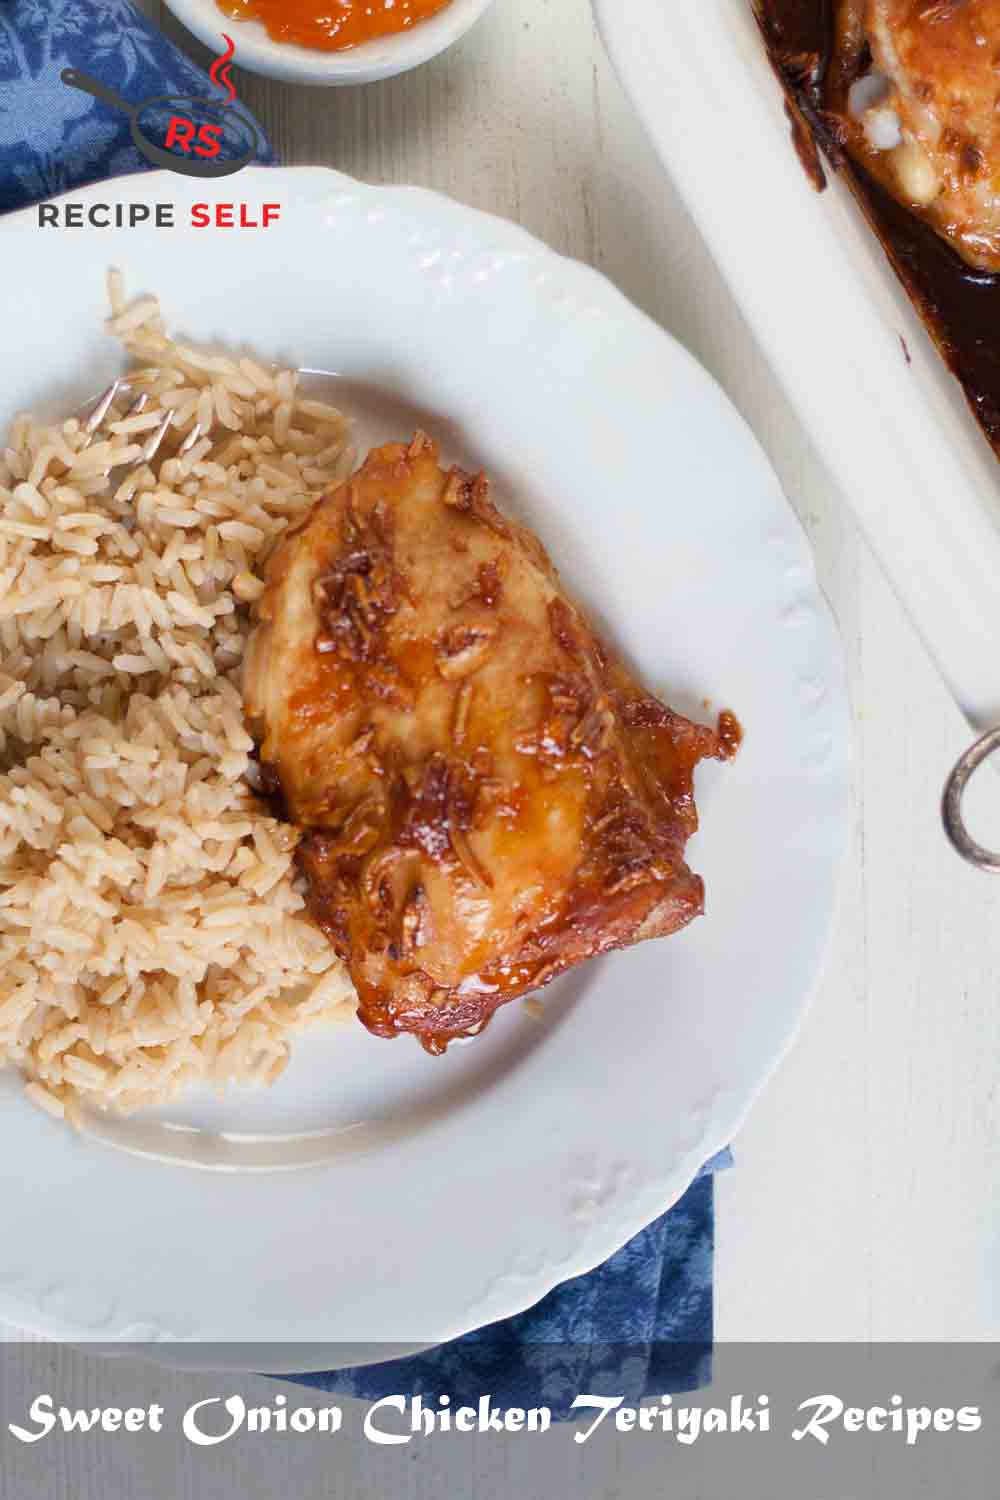 Sweet Onion Chicken Teriyaki Recipes